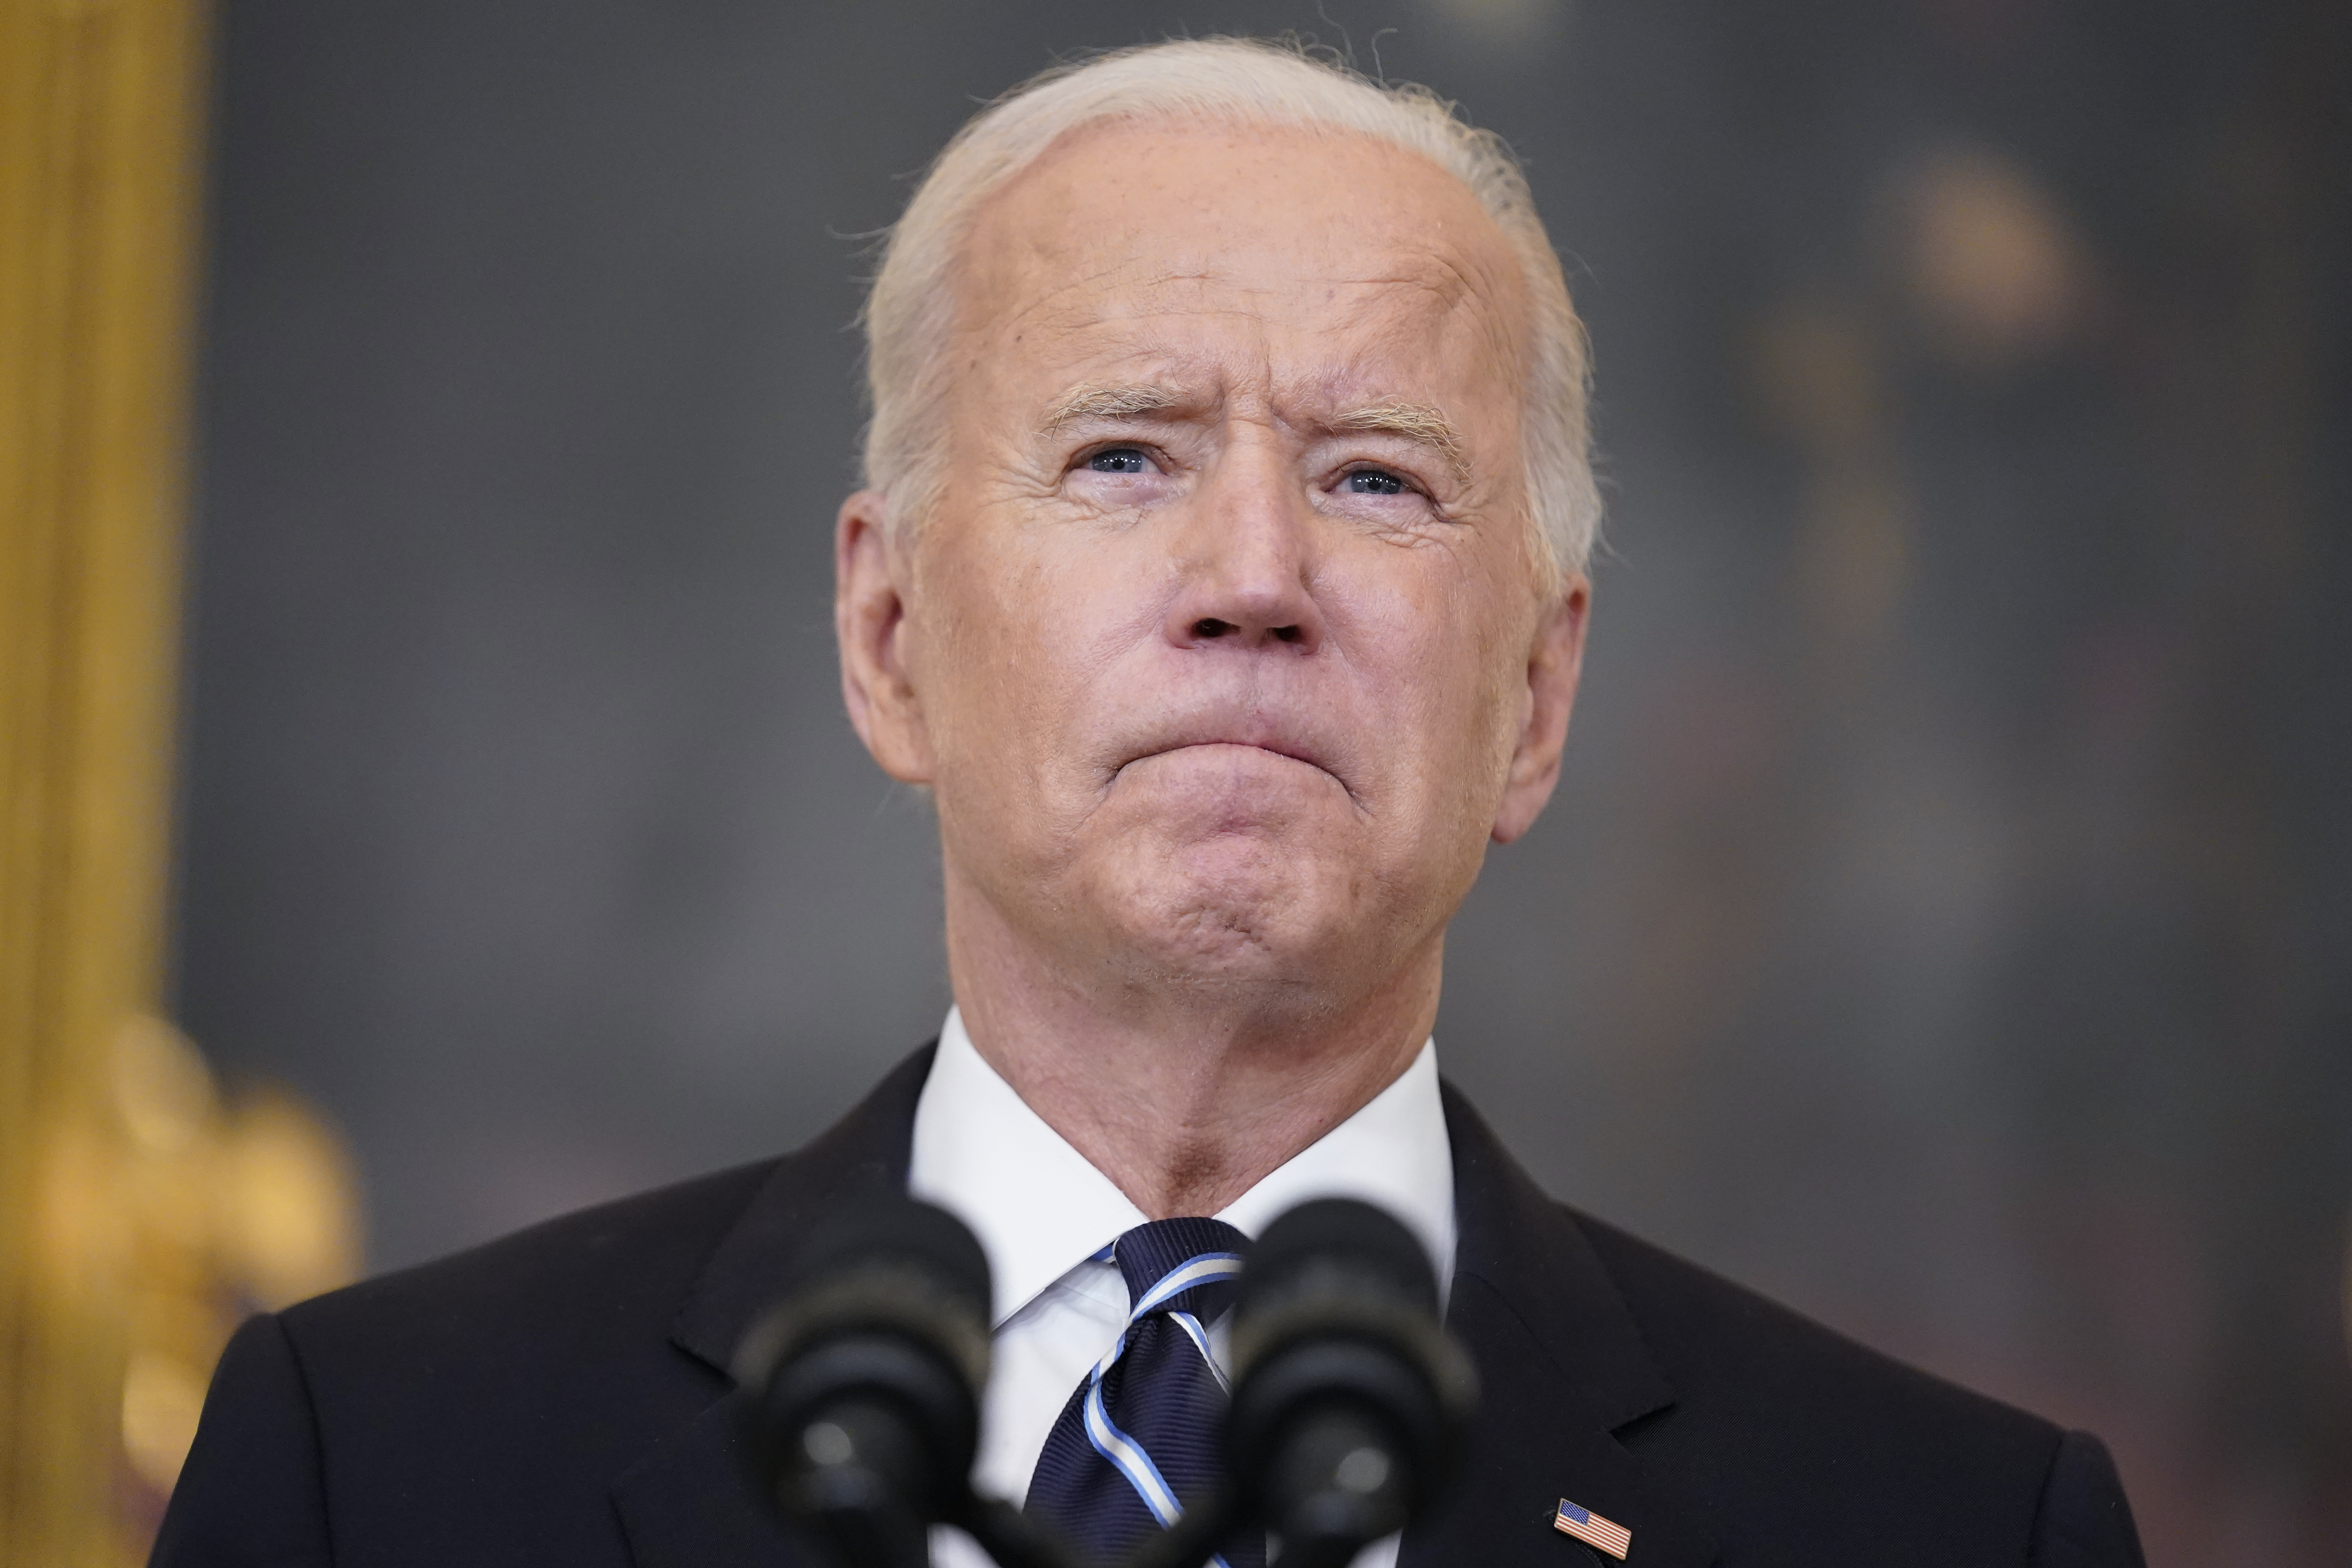 President Joe Biden pauses as he speaks in the State Dining Room at the White House.